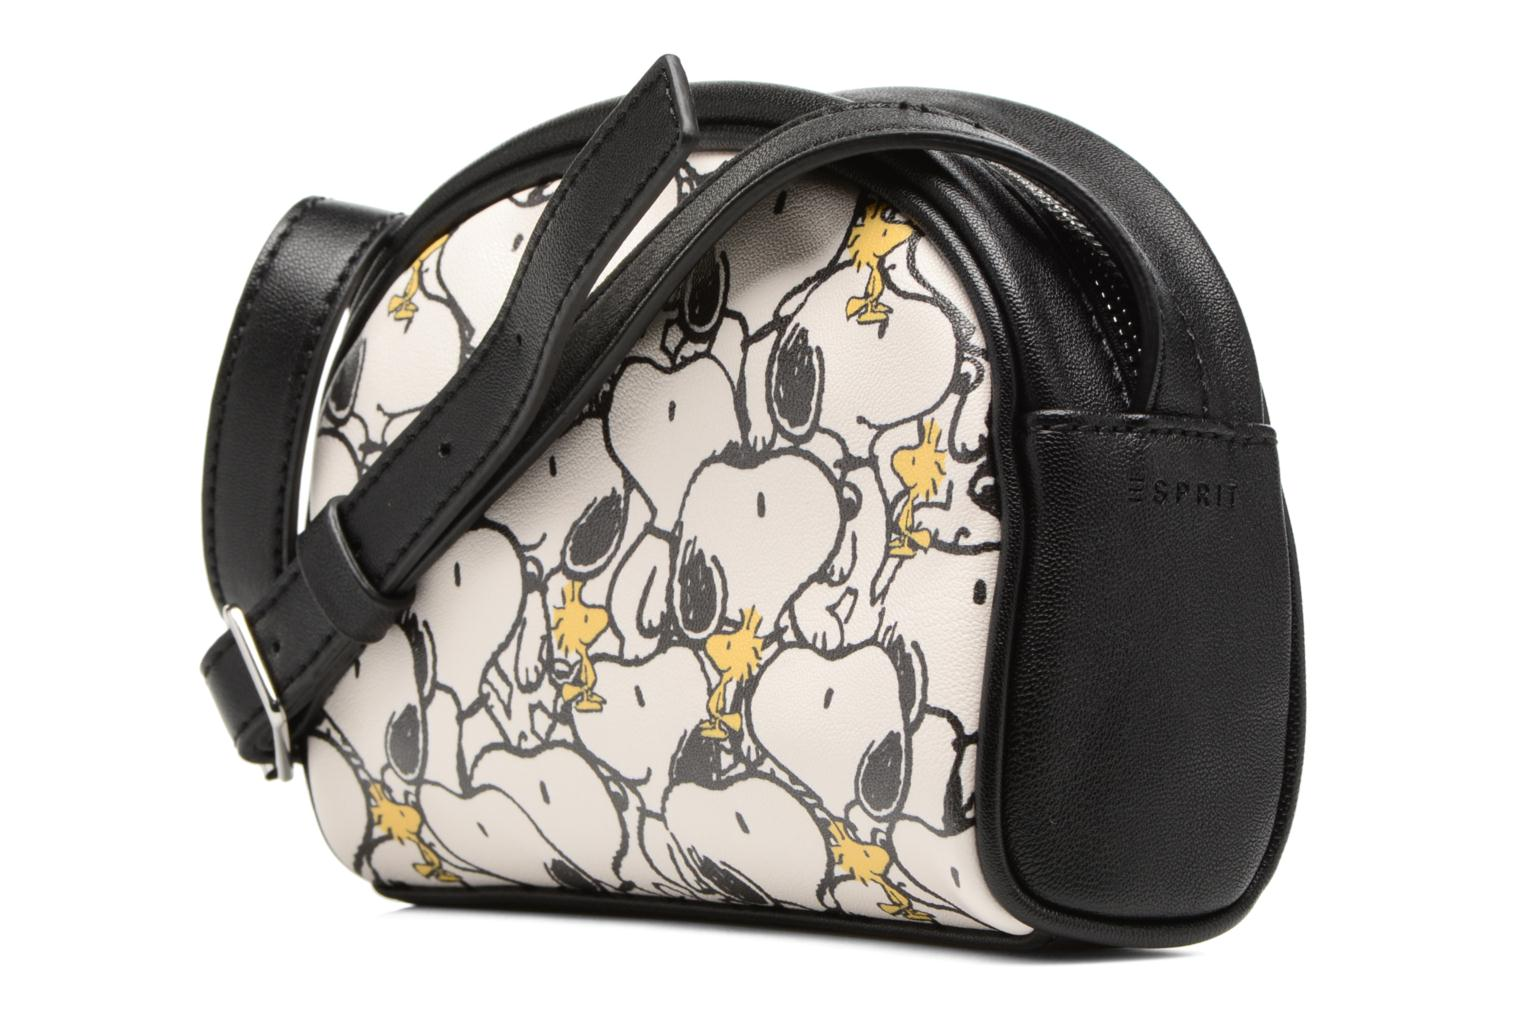 Sacs à main Esprit Snoopy Shoulderbag Multicolore vue face